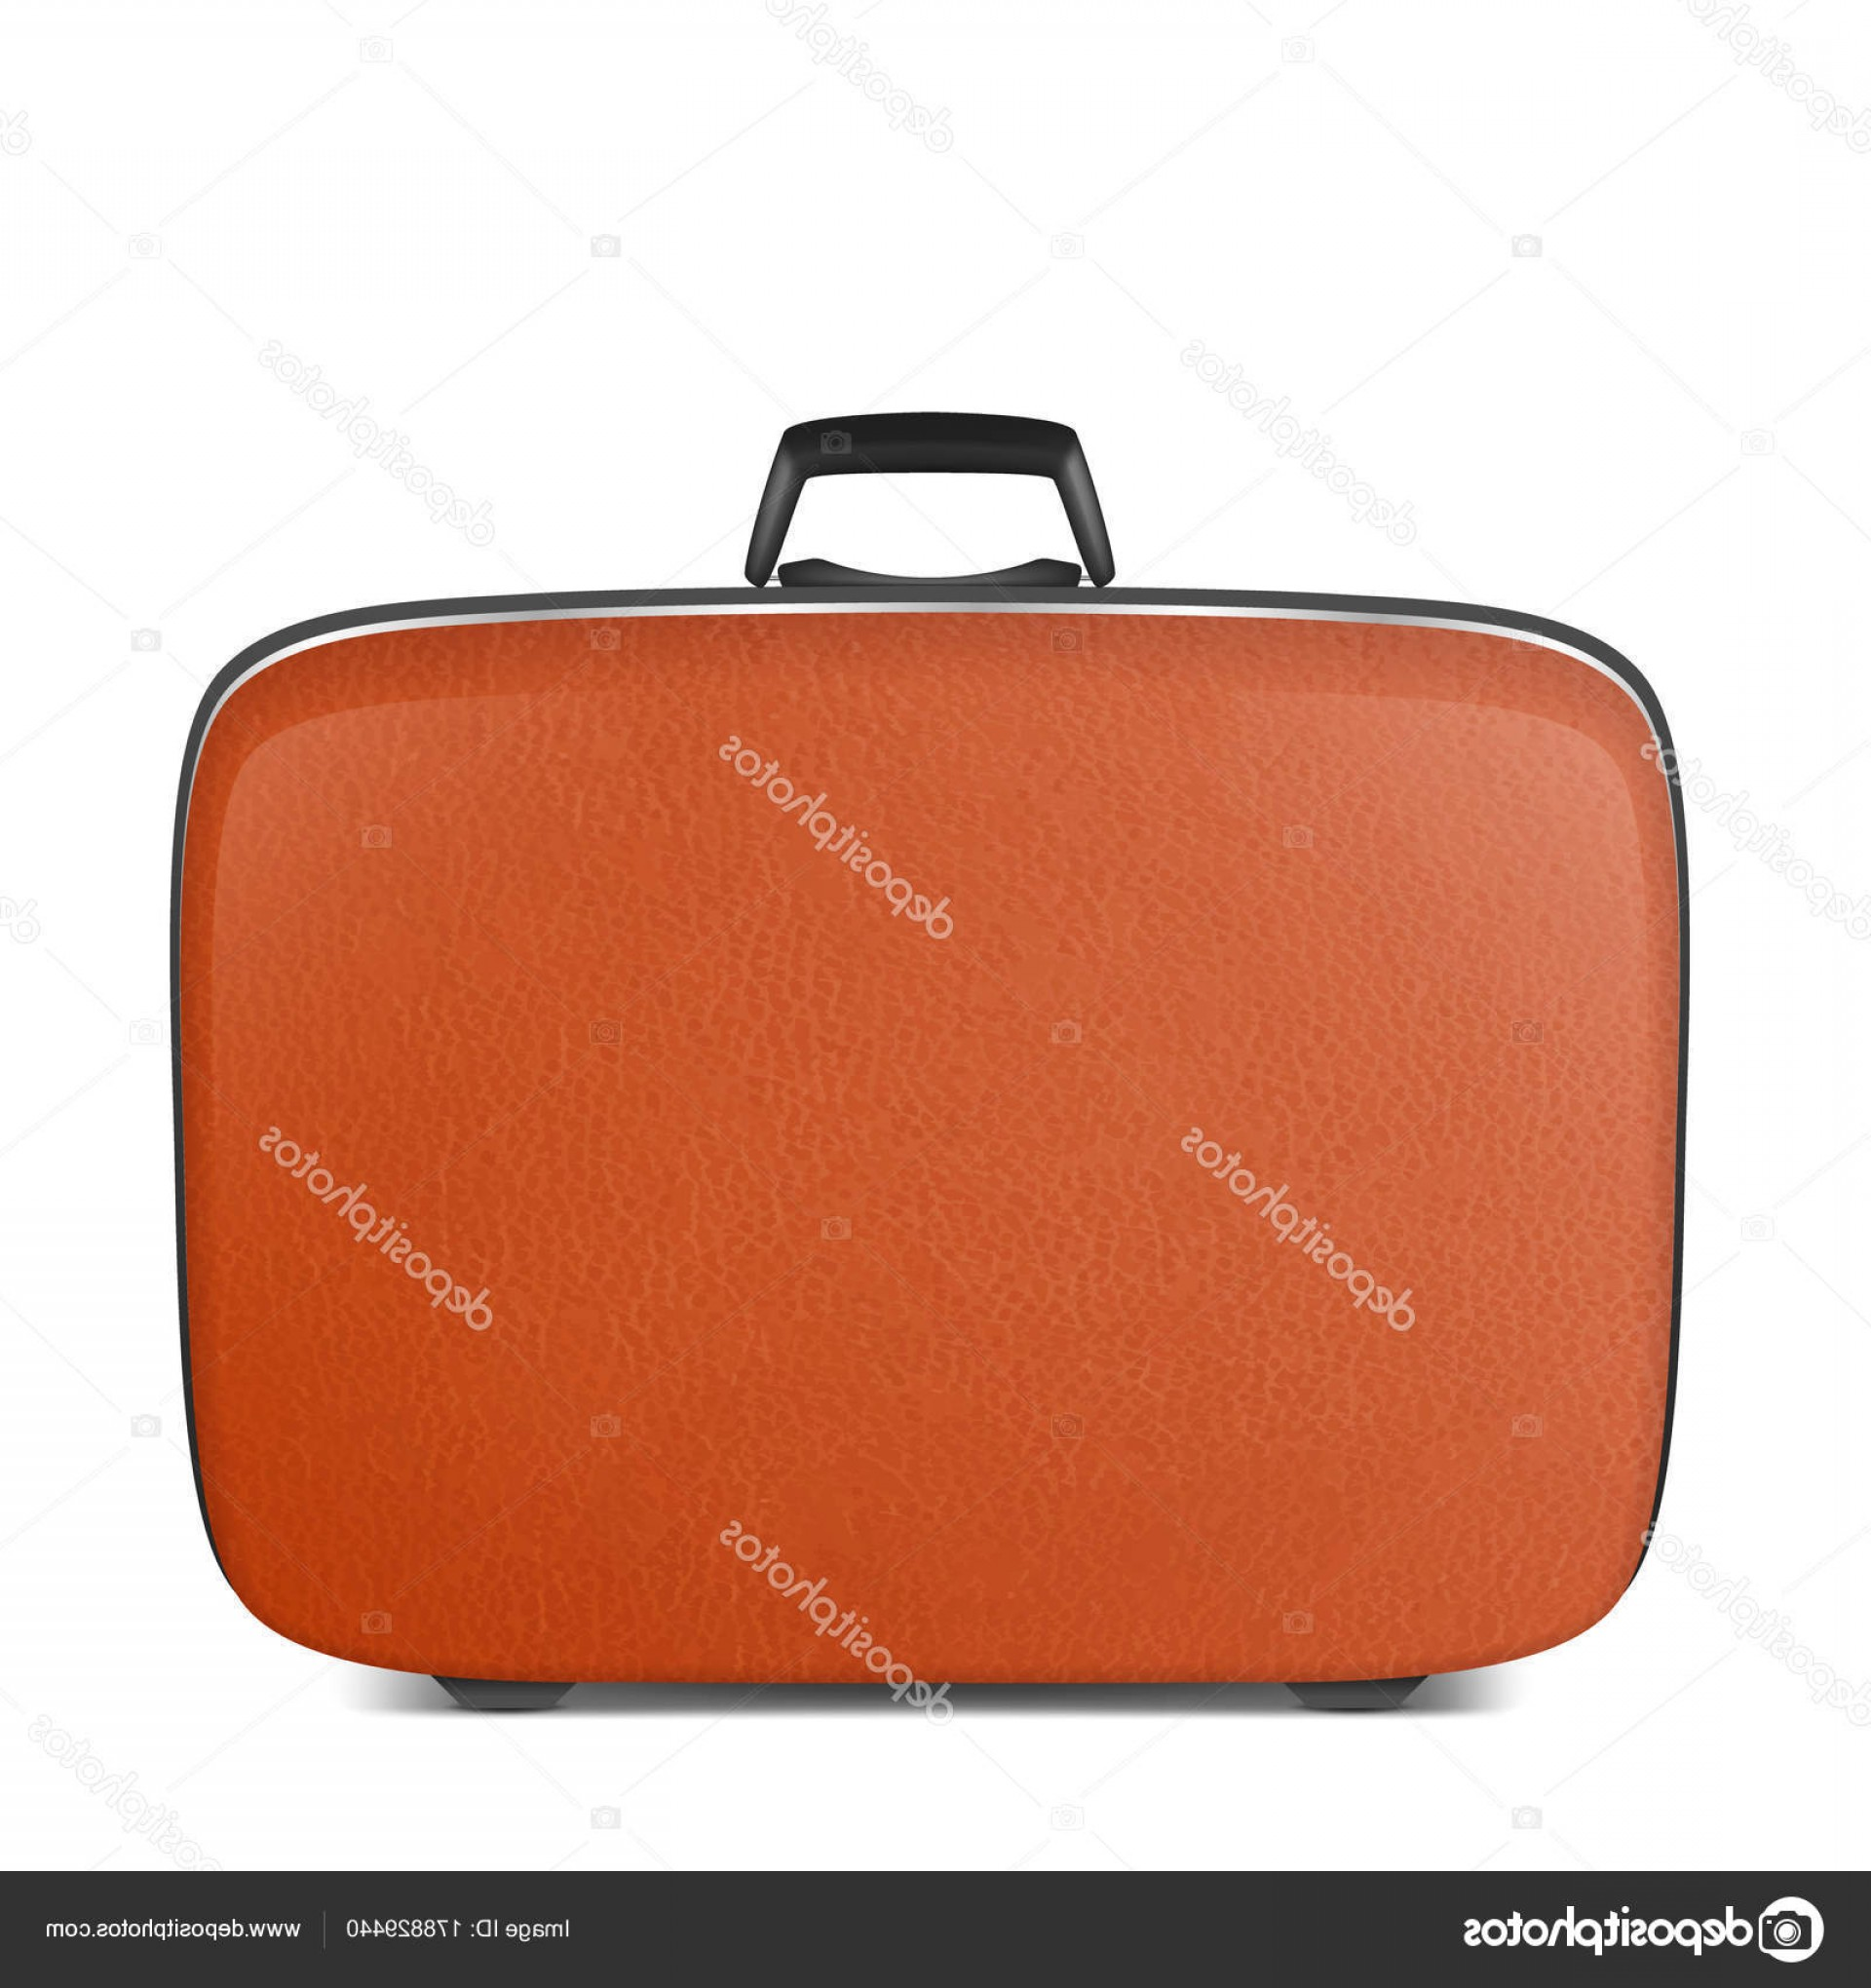 Vintage Luggage Vector: Stock Illustration Realistic Vector Retro Vintage Leather